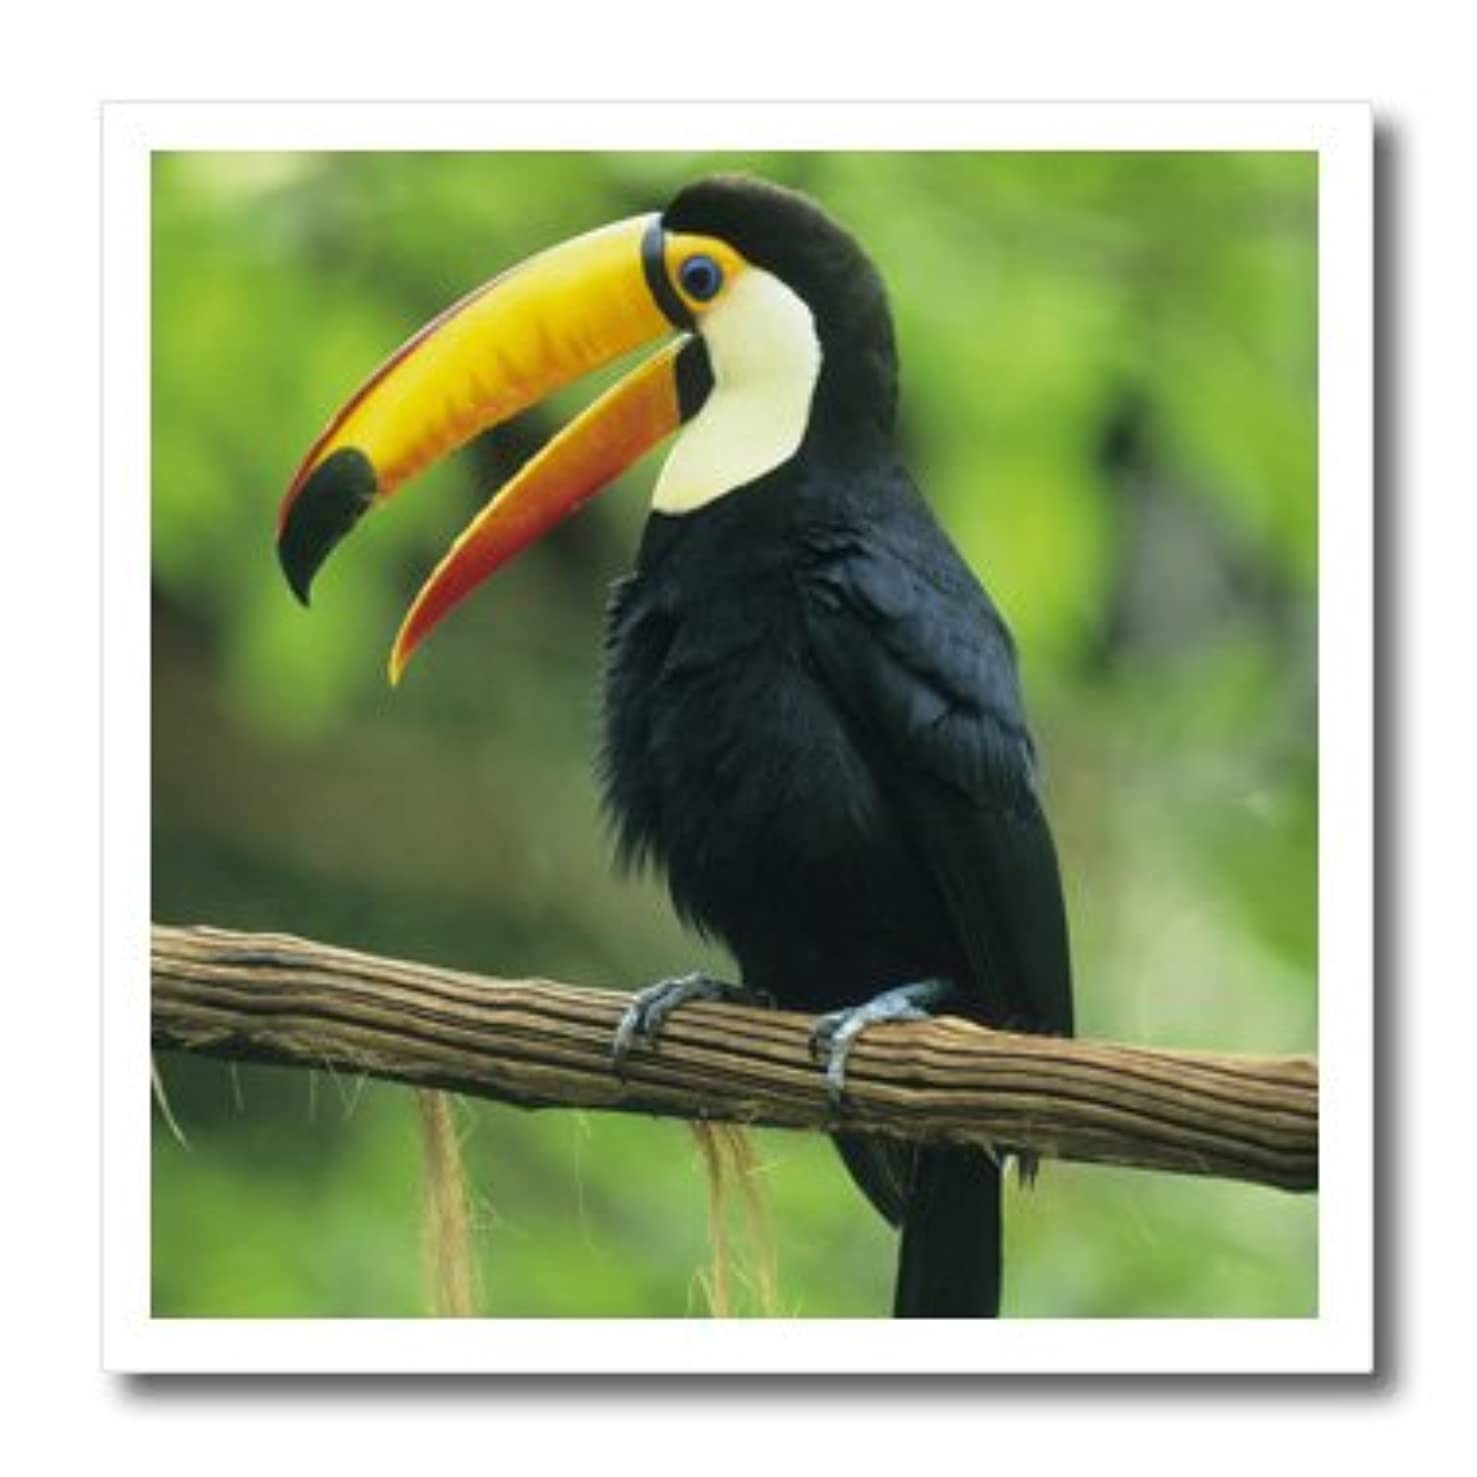 3dRose ht_85574_2 Toco Toucan, Tropical bird, Iguacu Falls NP, Brazil - Kevin Schafer - Iron on Heat Transfer for White Material, 6 by 6-Inch